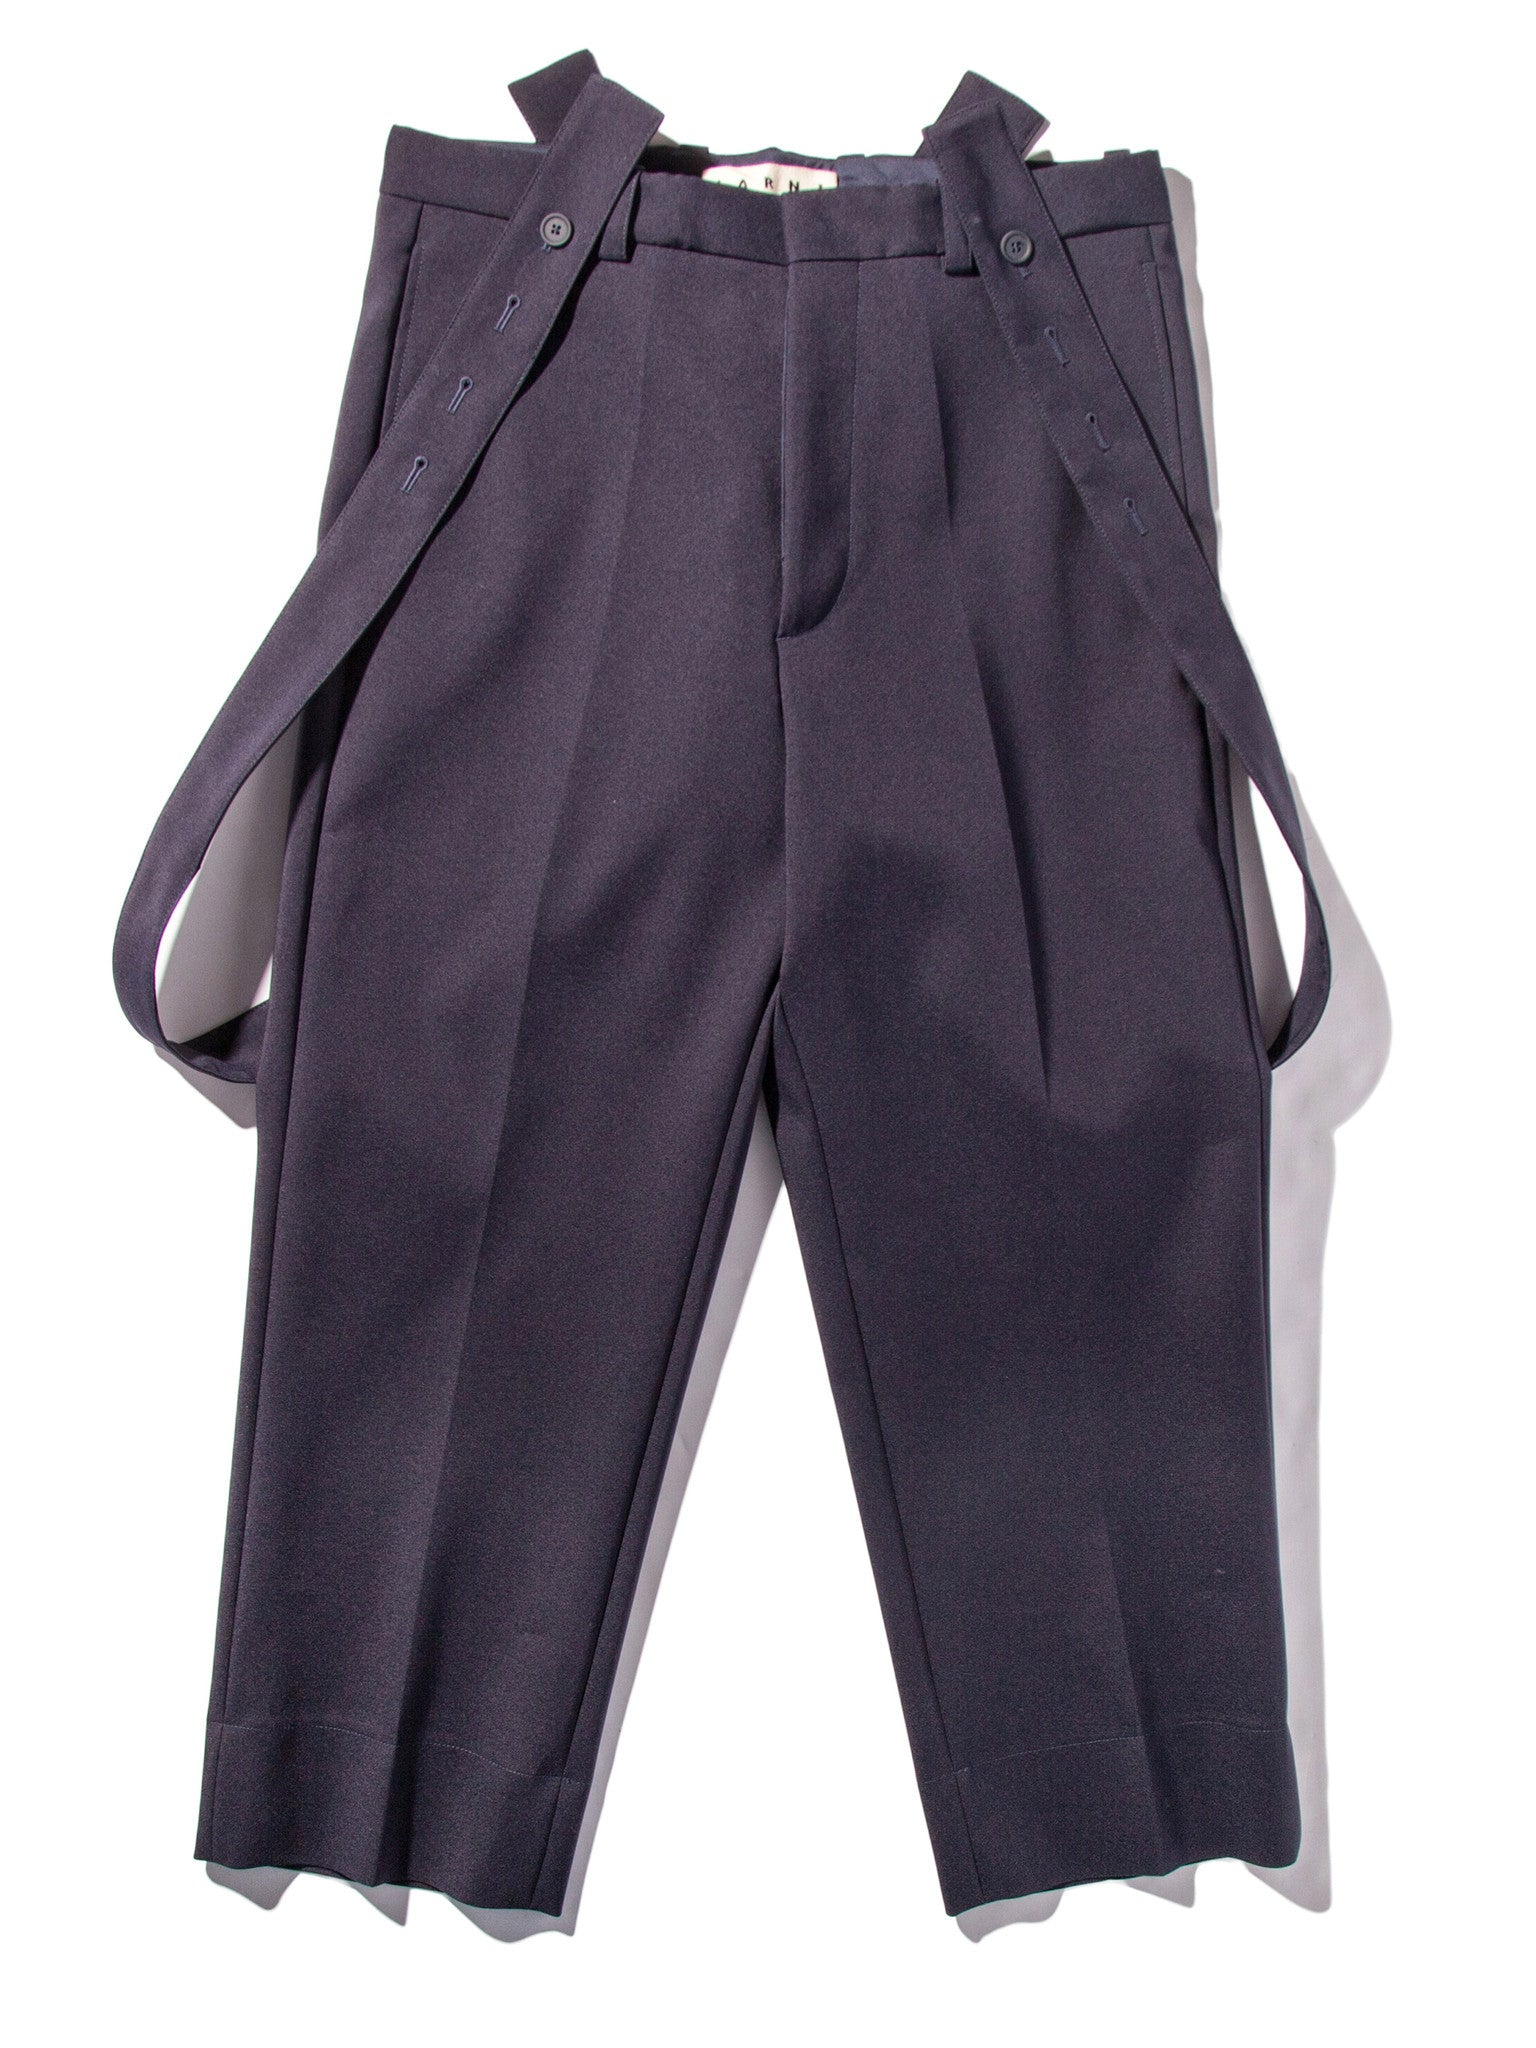 50 Technical Double Twill Trouser 6